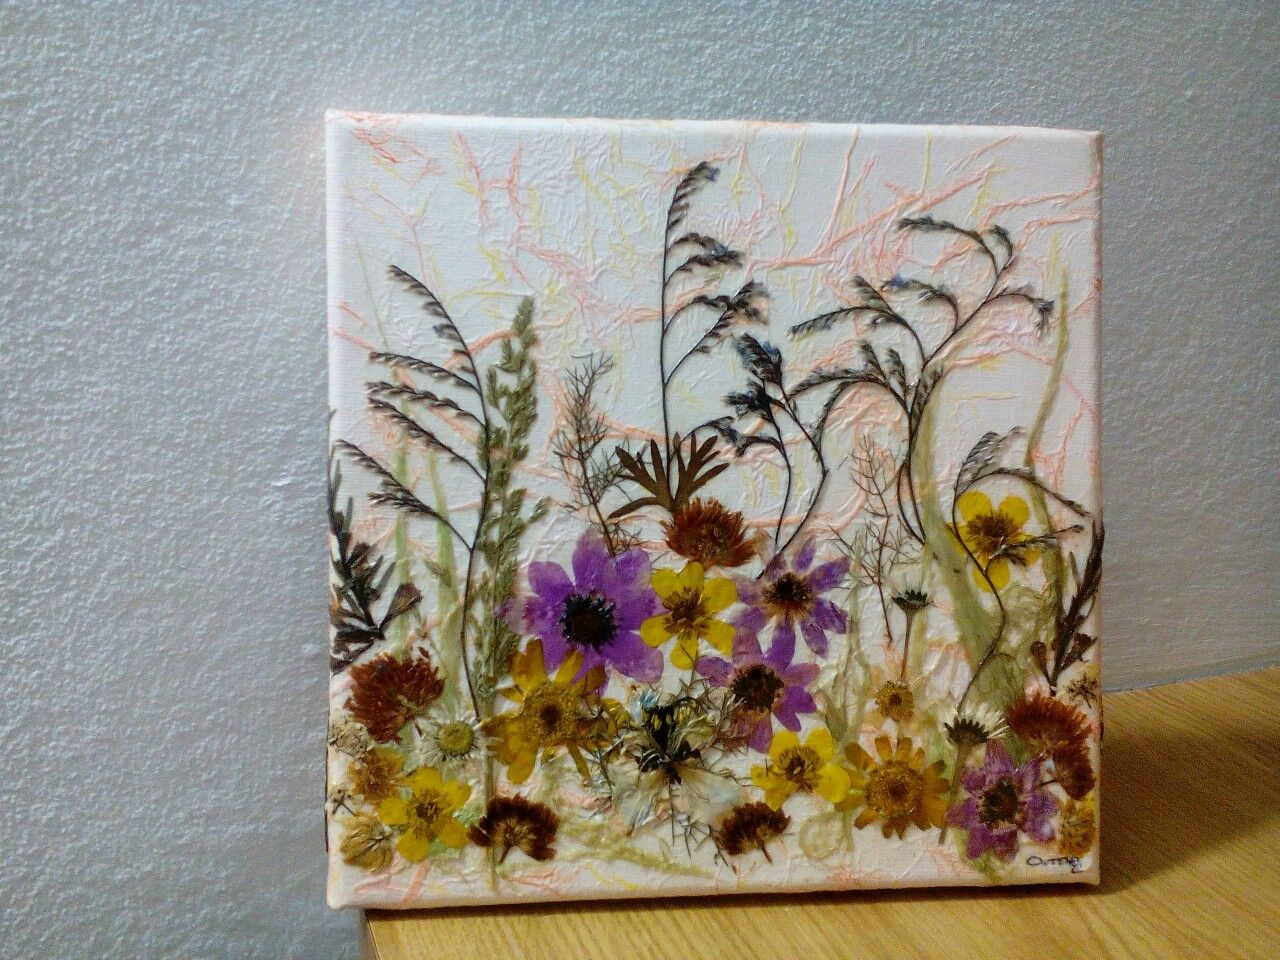 Pressed Flower Canvas My Craft Work Pinterest Flowers Pressed